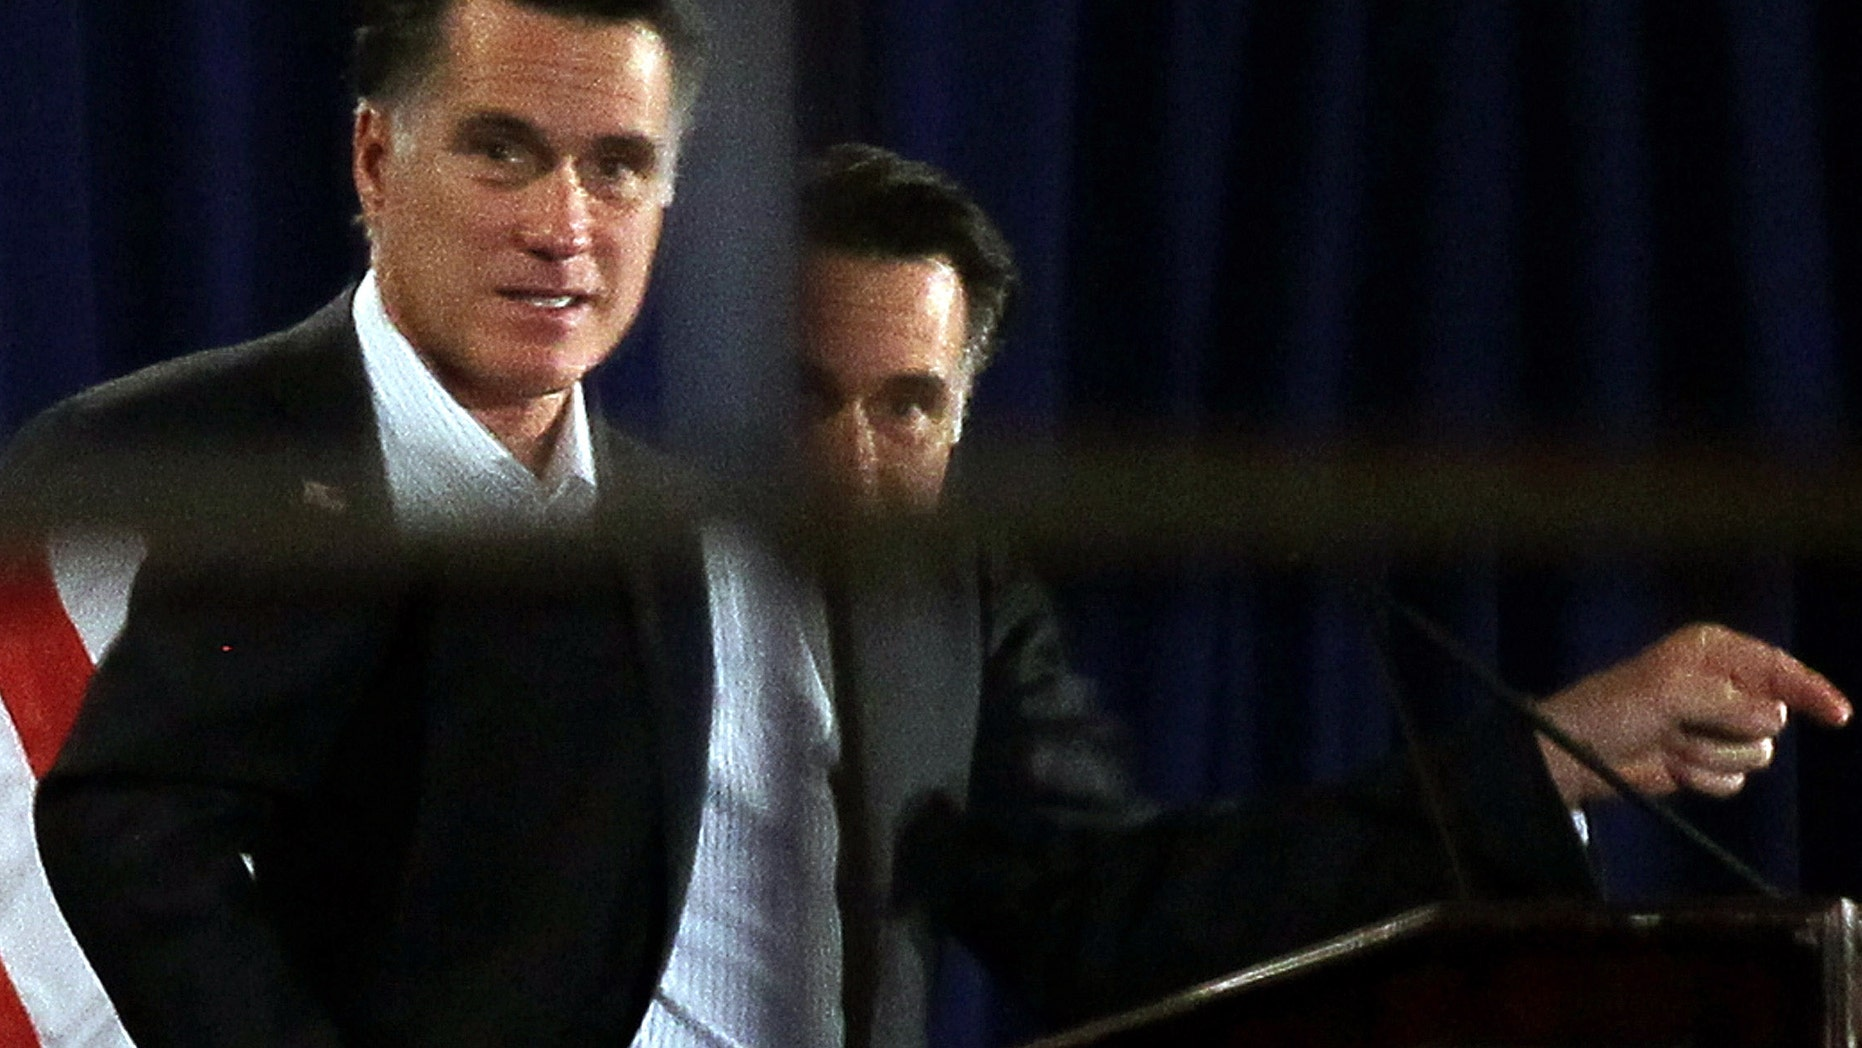 Republican presidential candidate, former Massachusetts Gov. Mitt Romney. (Photo by Justin Sullivan/Getty Images)